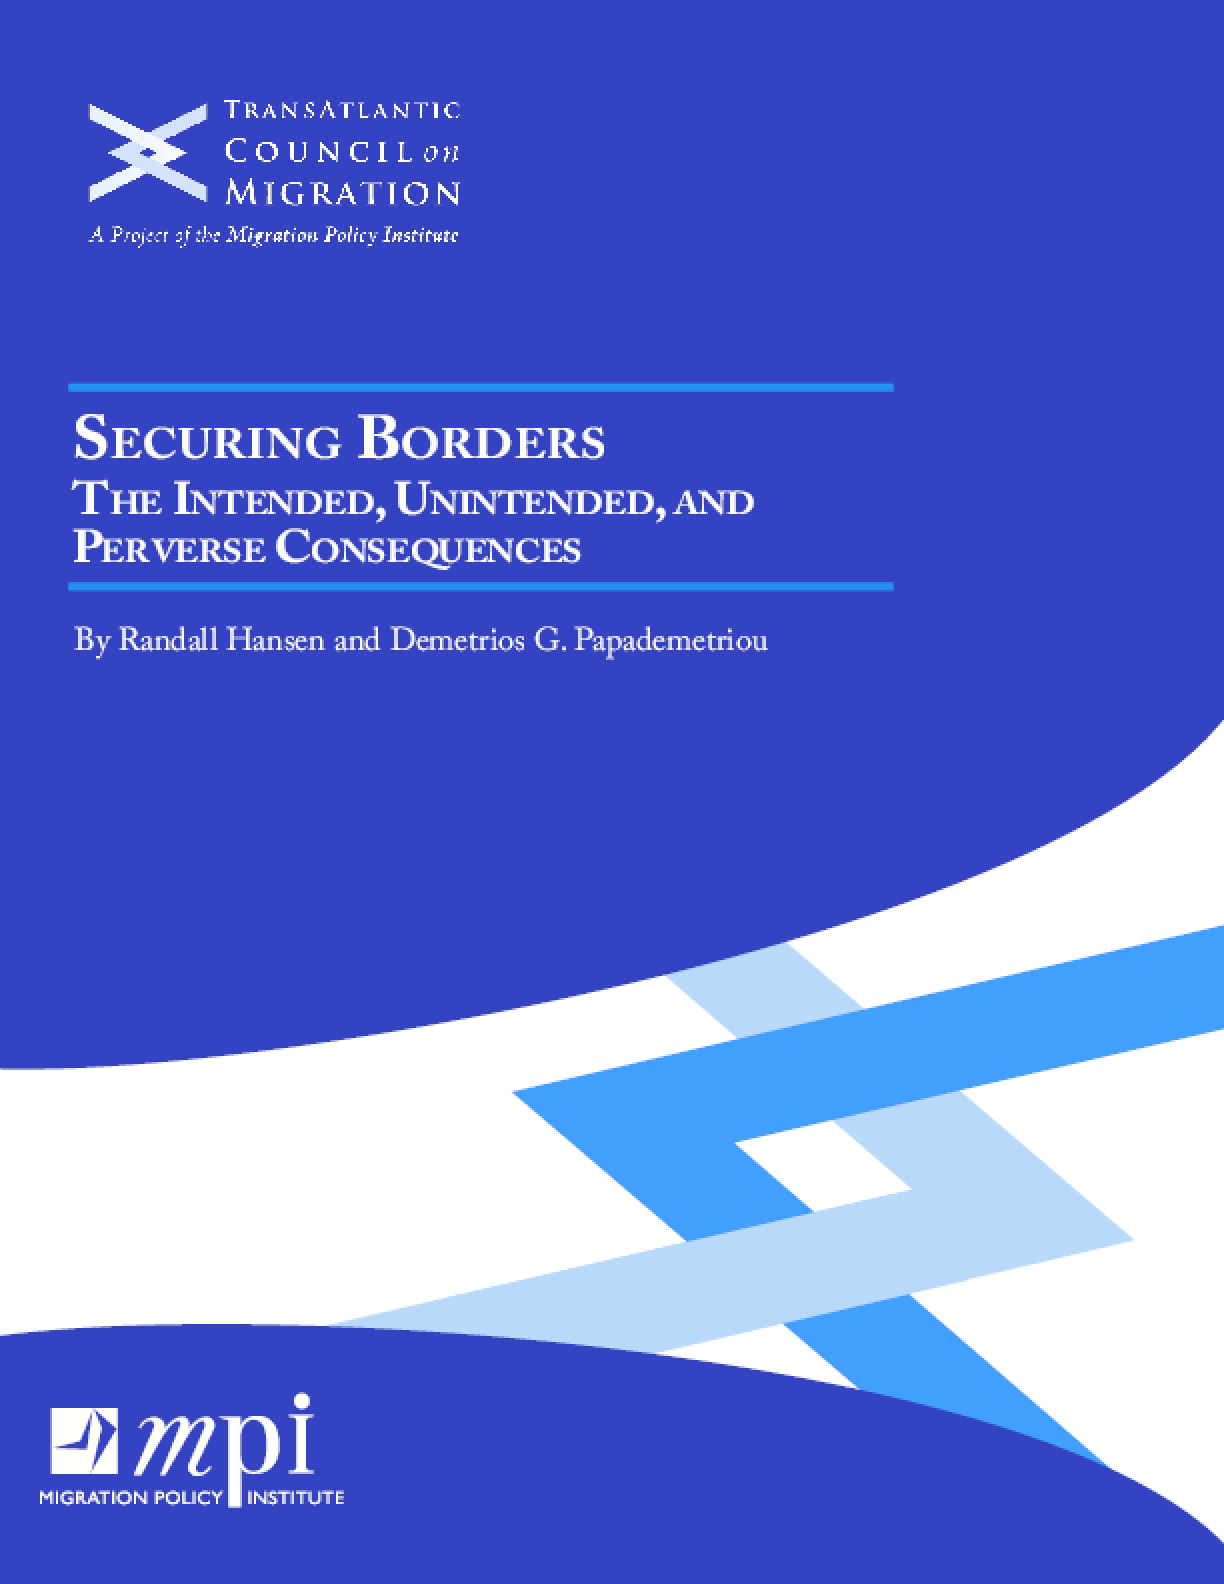 Securing Borders: The Intended, Unintended and Perverse Consequences.